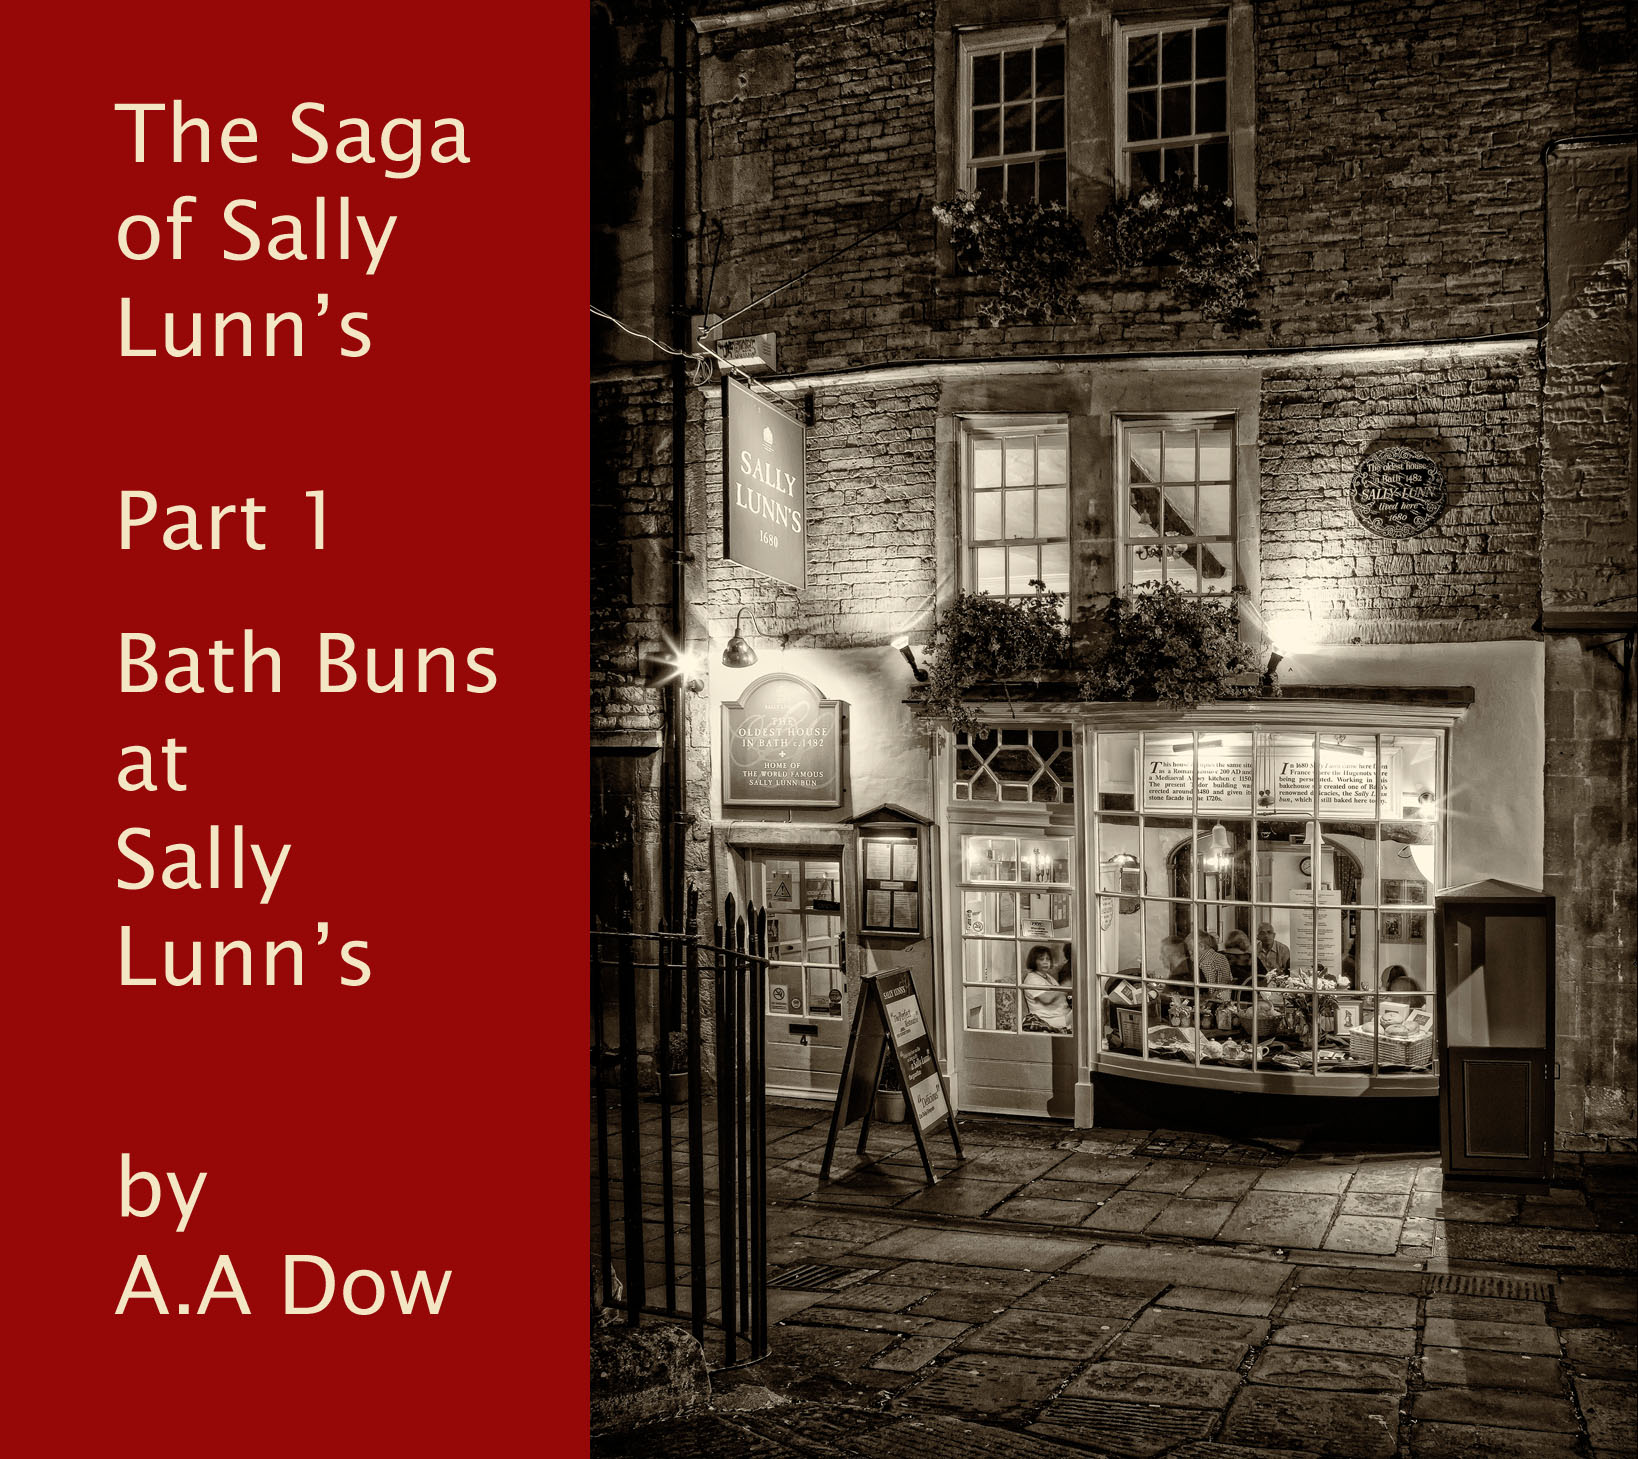 Bath Buns at Sally Lunn's